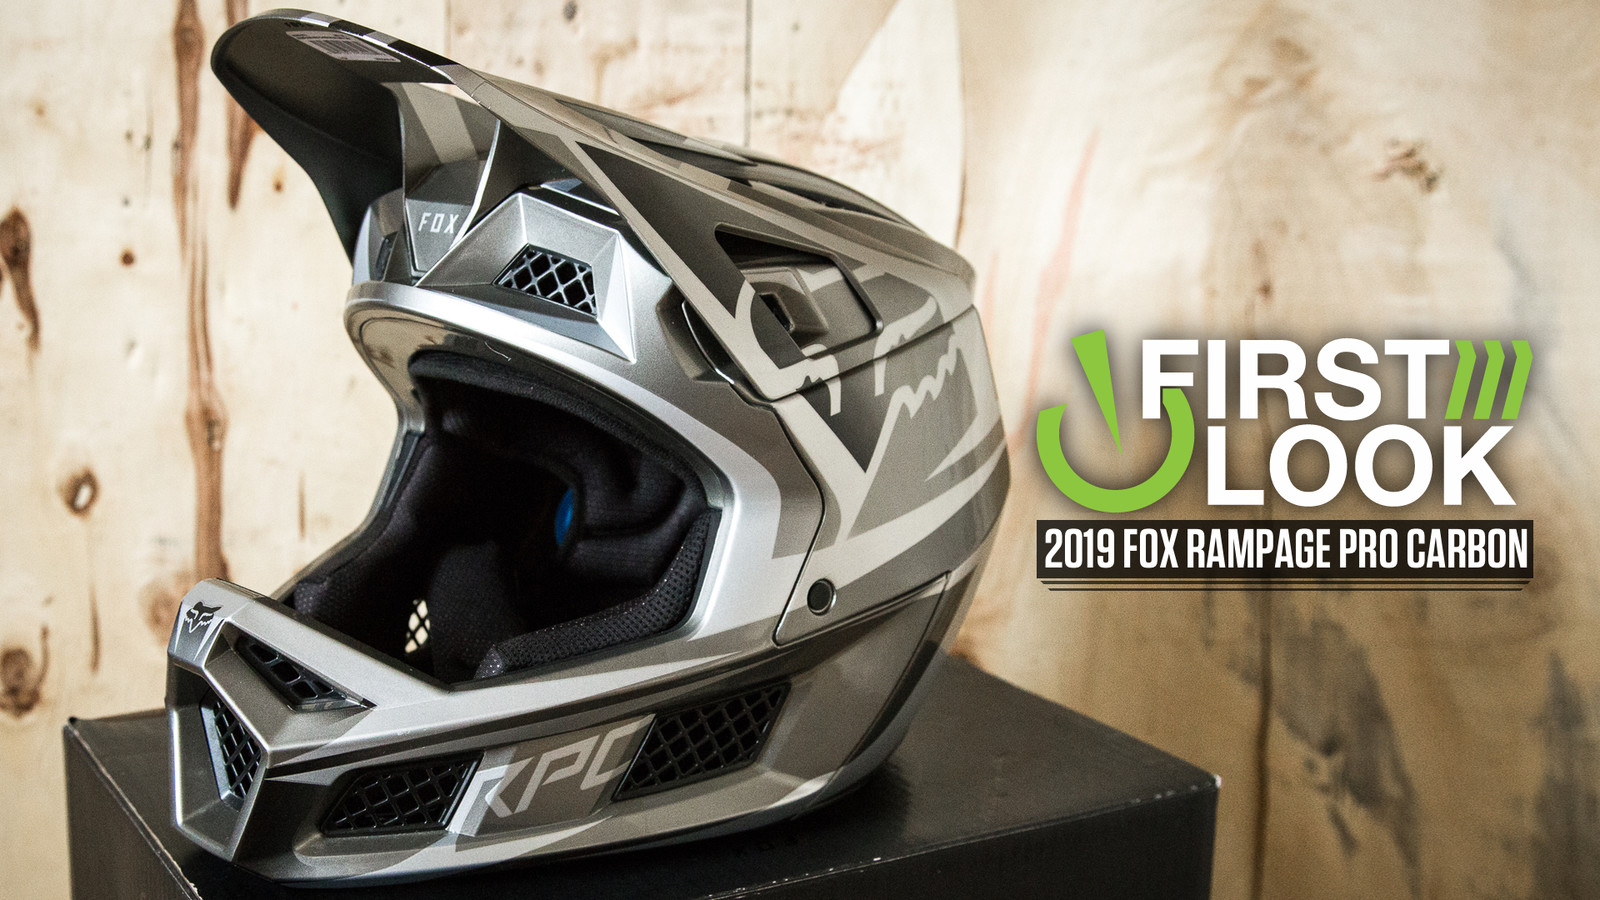 Fox's New Rampage Pro Carbon Gravity Helmet - First Look